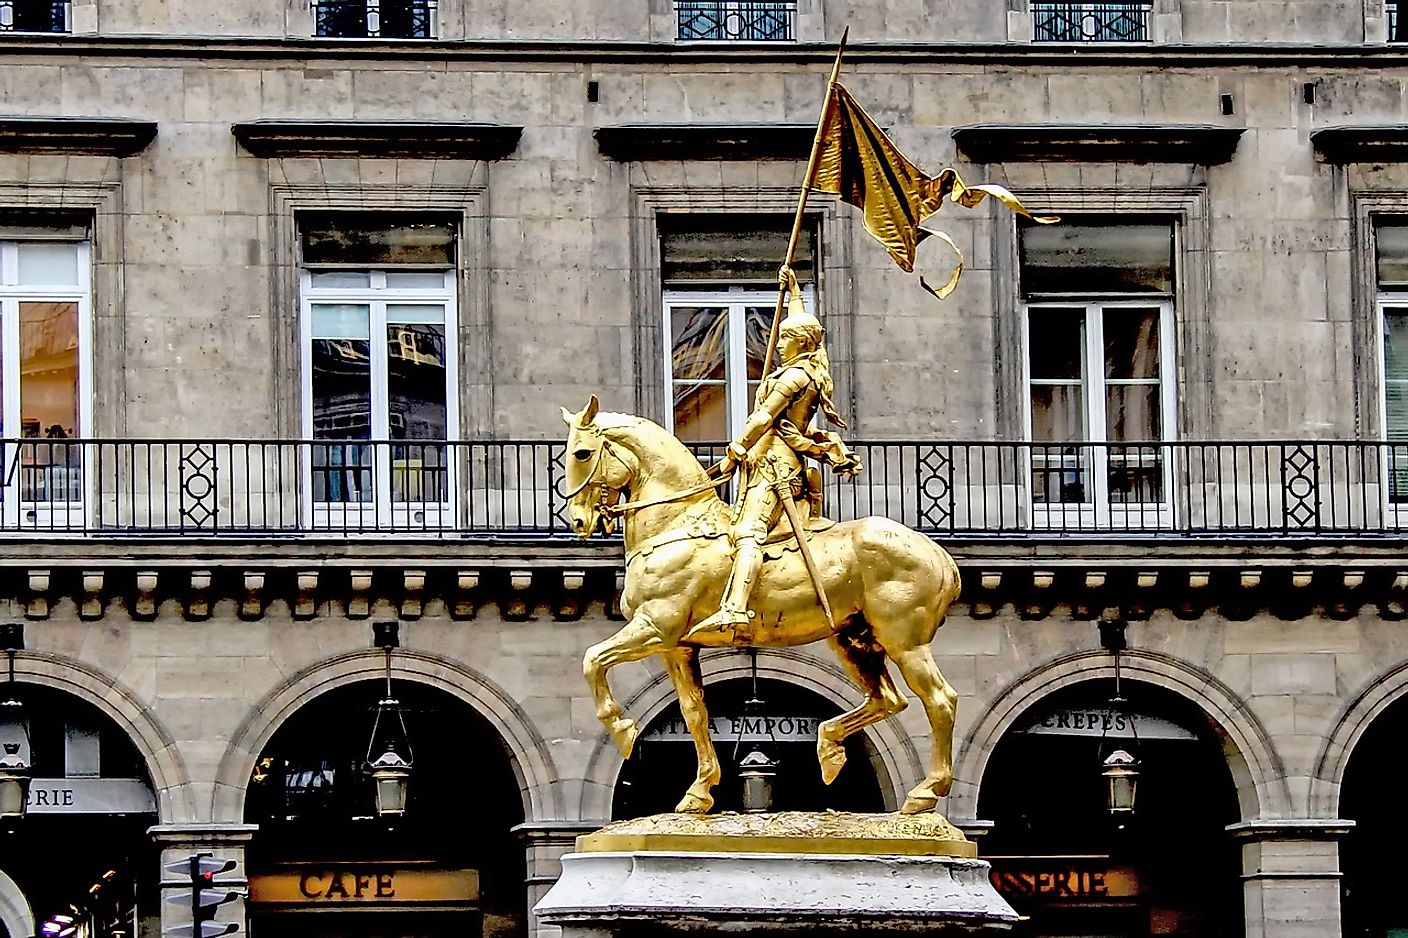 Joan of Arc statue. Image credit: Wolfgang Claussen from Pixabay